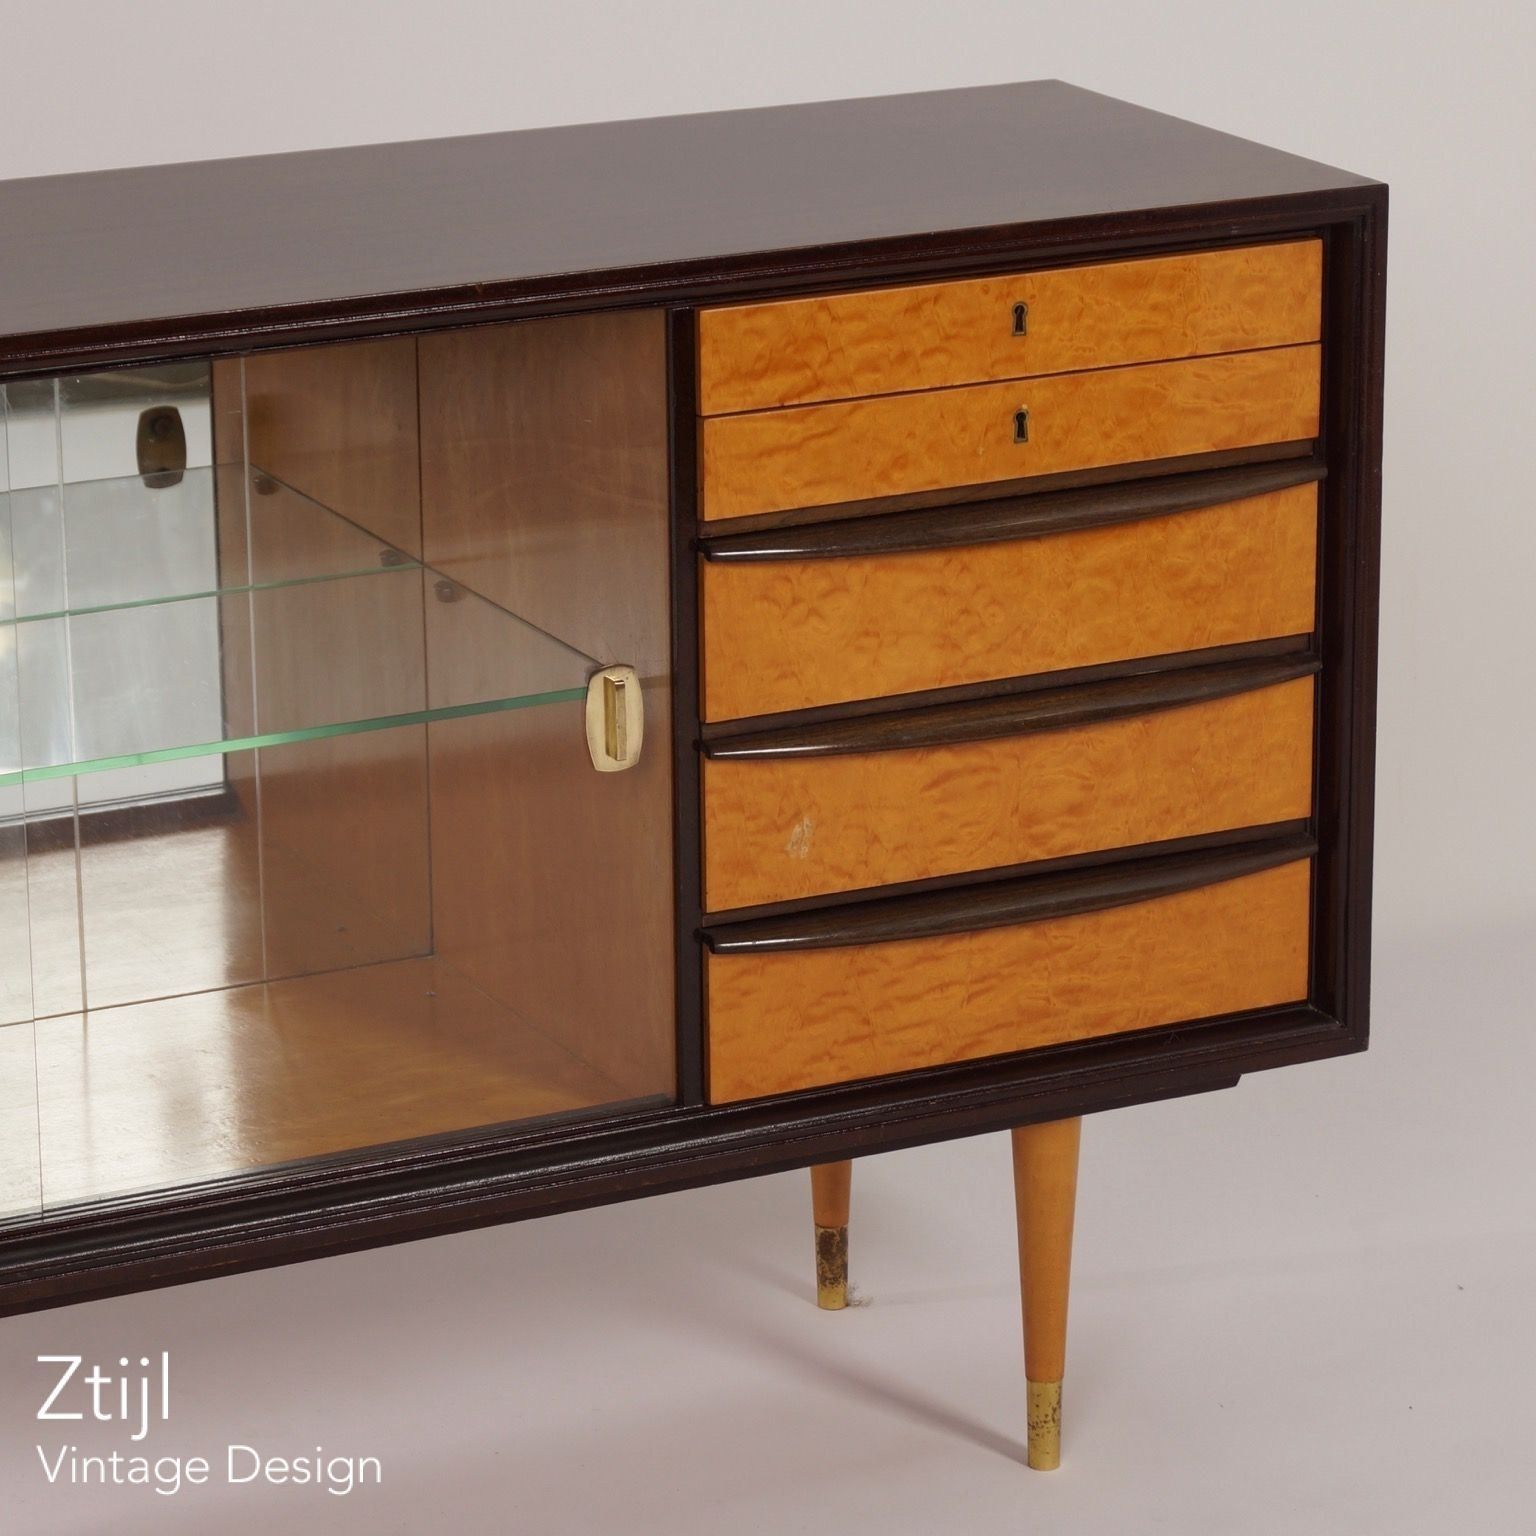 Mahogany Sideboard With Showcase And Brass Details, 1960S - Vintage pertaining to Vintage 8 Glass Sideboards (Image 16 of 30)